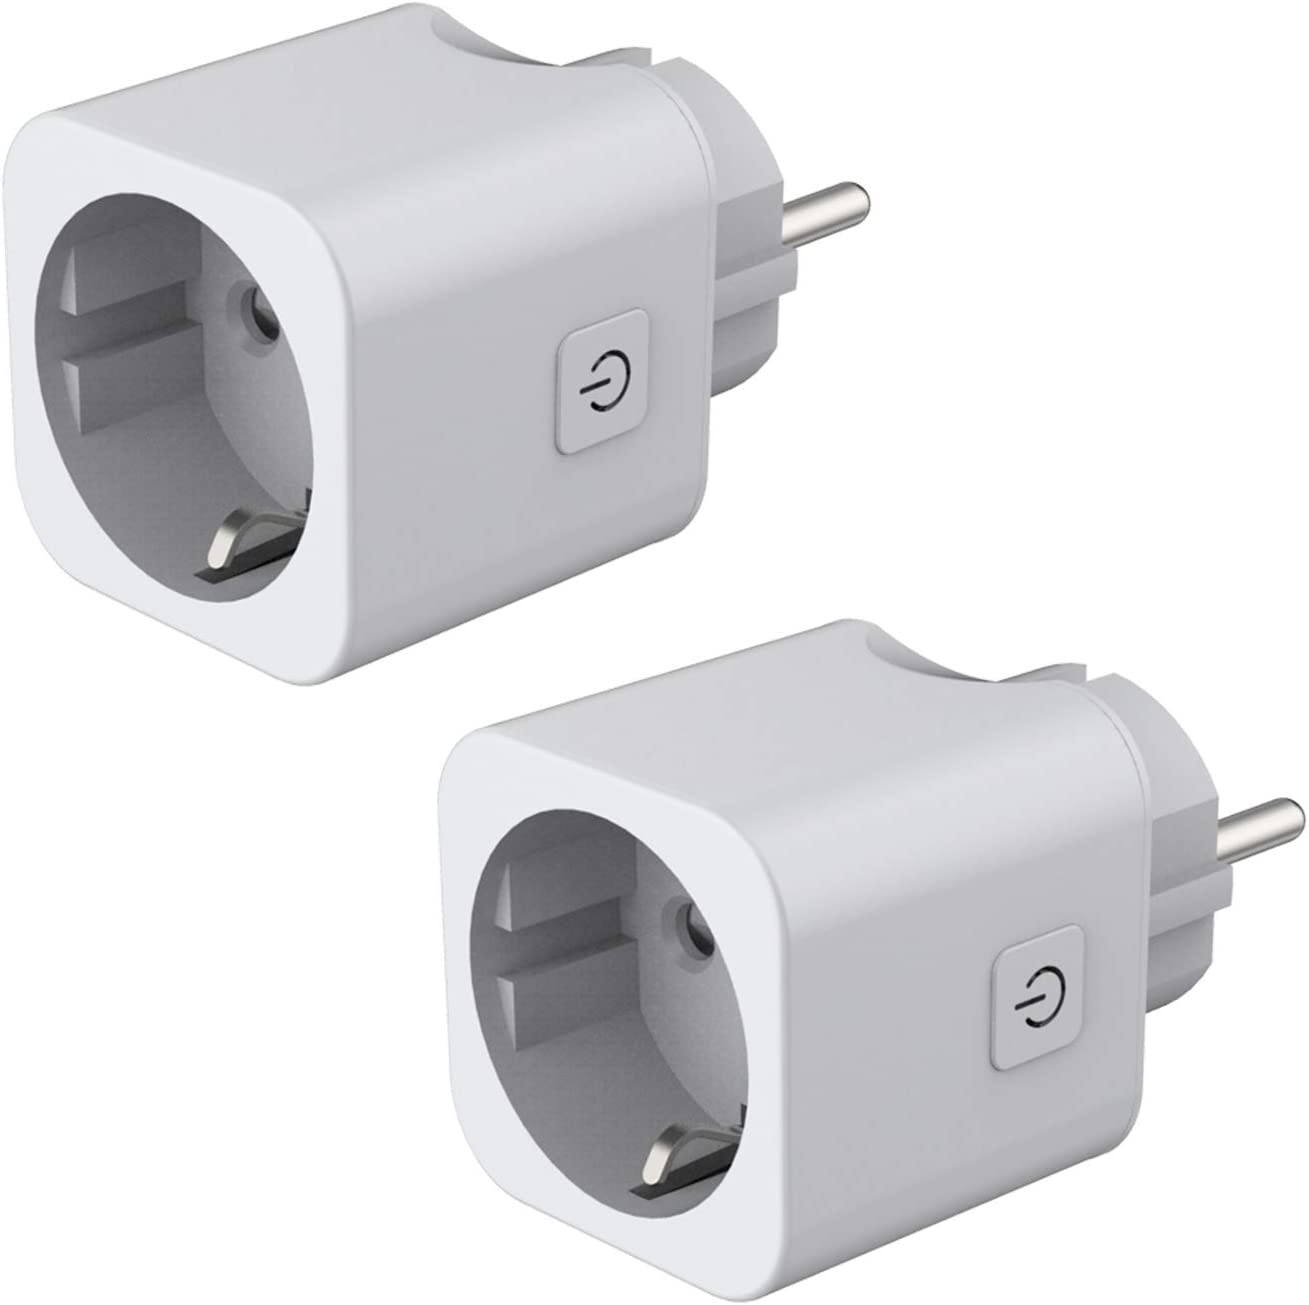 Enchufe Inteligente WiFi Smart Plug Control remoto No Requiere Hub,Toma de corriente inalámbrica para iOS Aplicación de Android Compatible con Google Home Amazon Alexa IFTTT(2 Pcs)